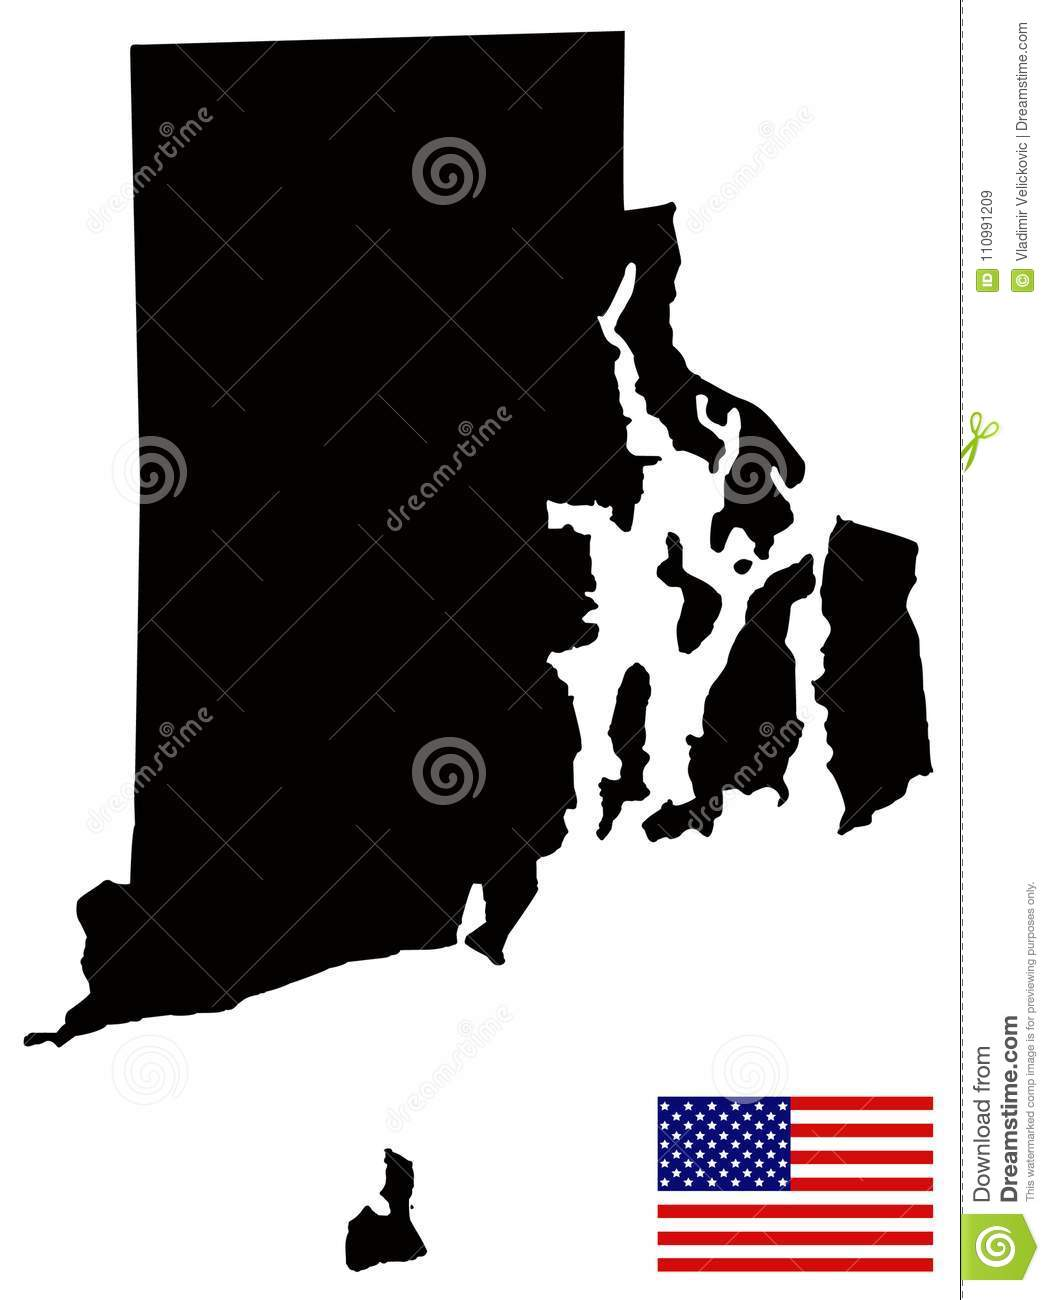 Rhode Island Map With USA Flag - State In The New England Region Of ...